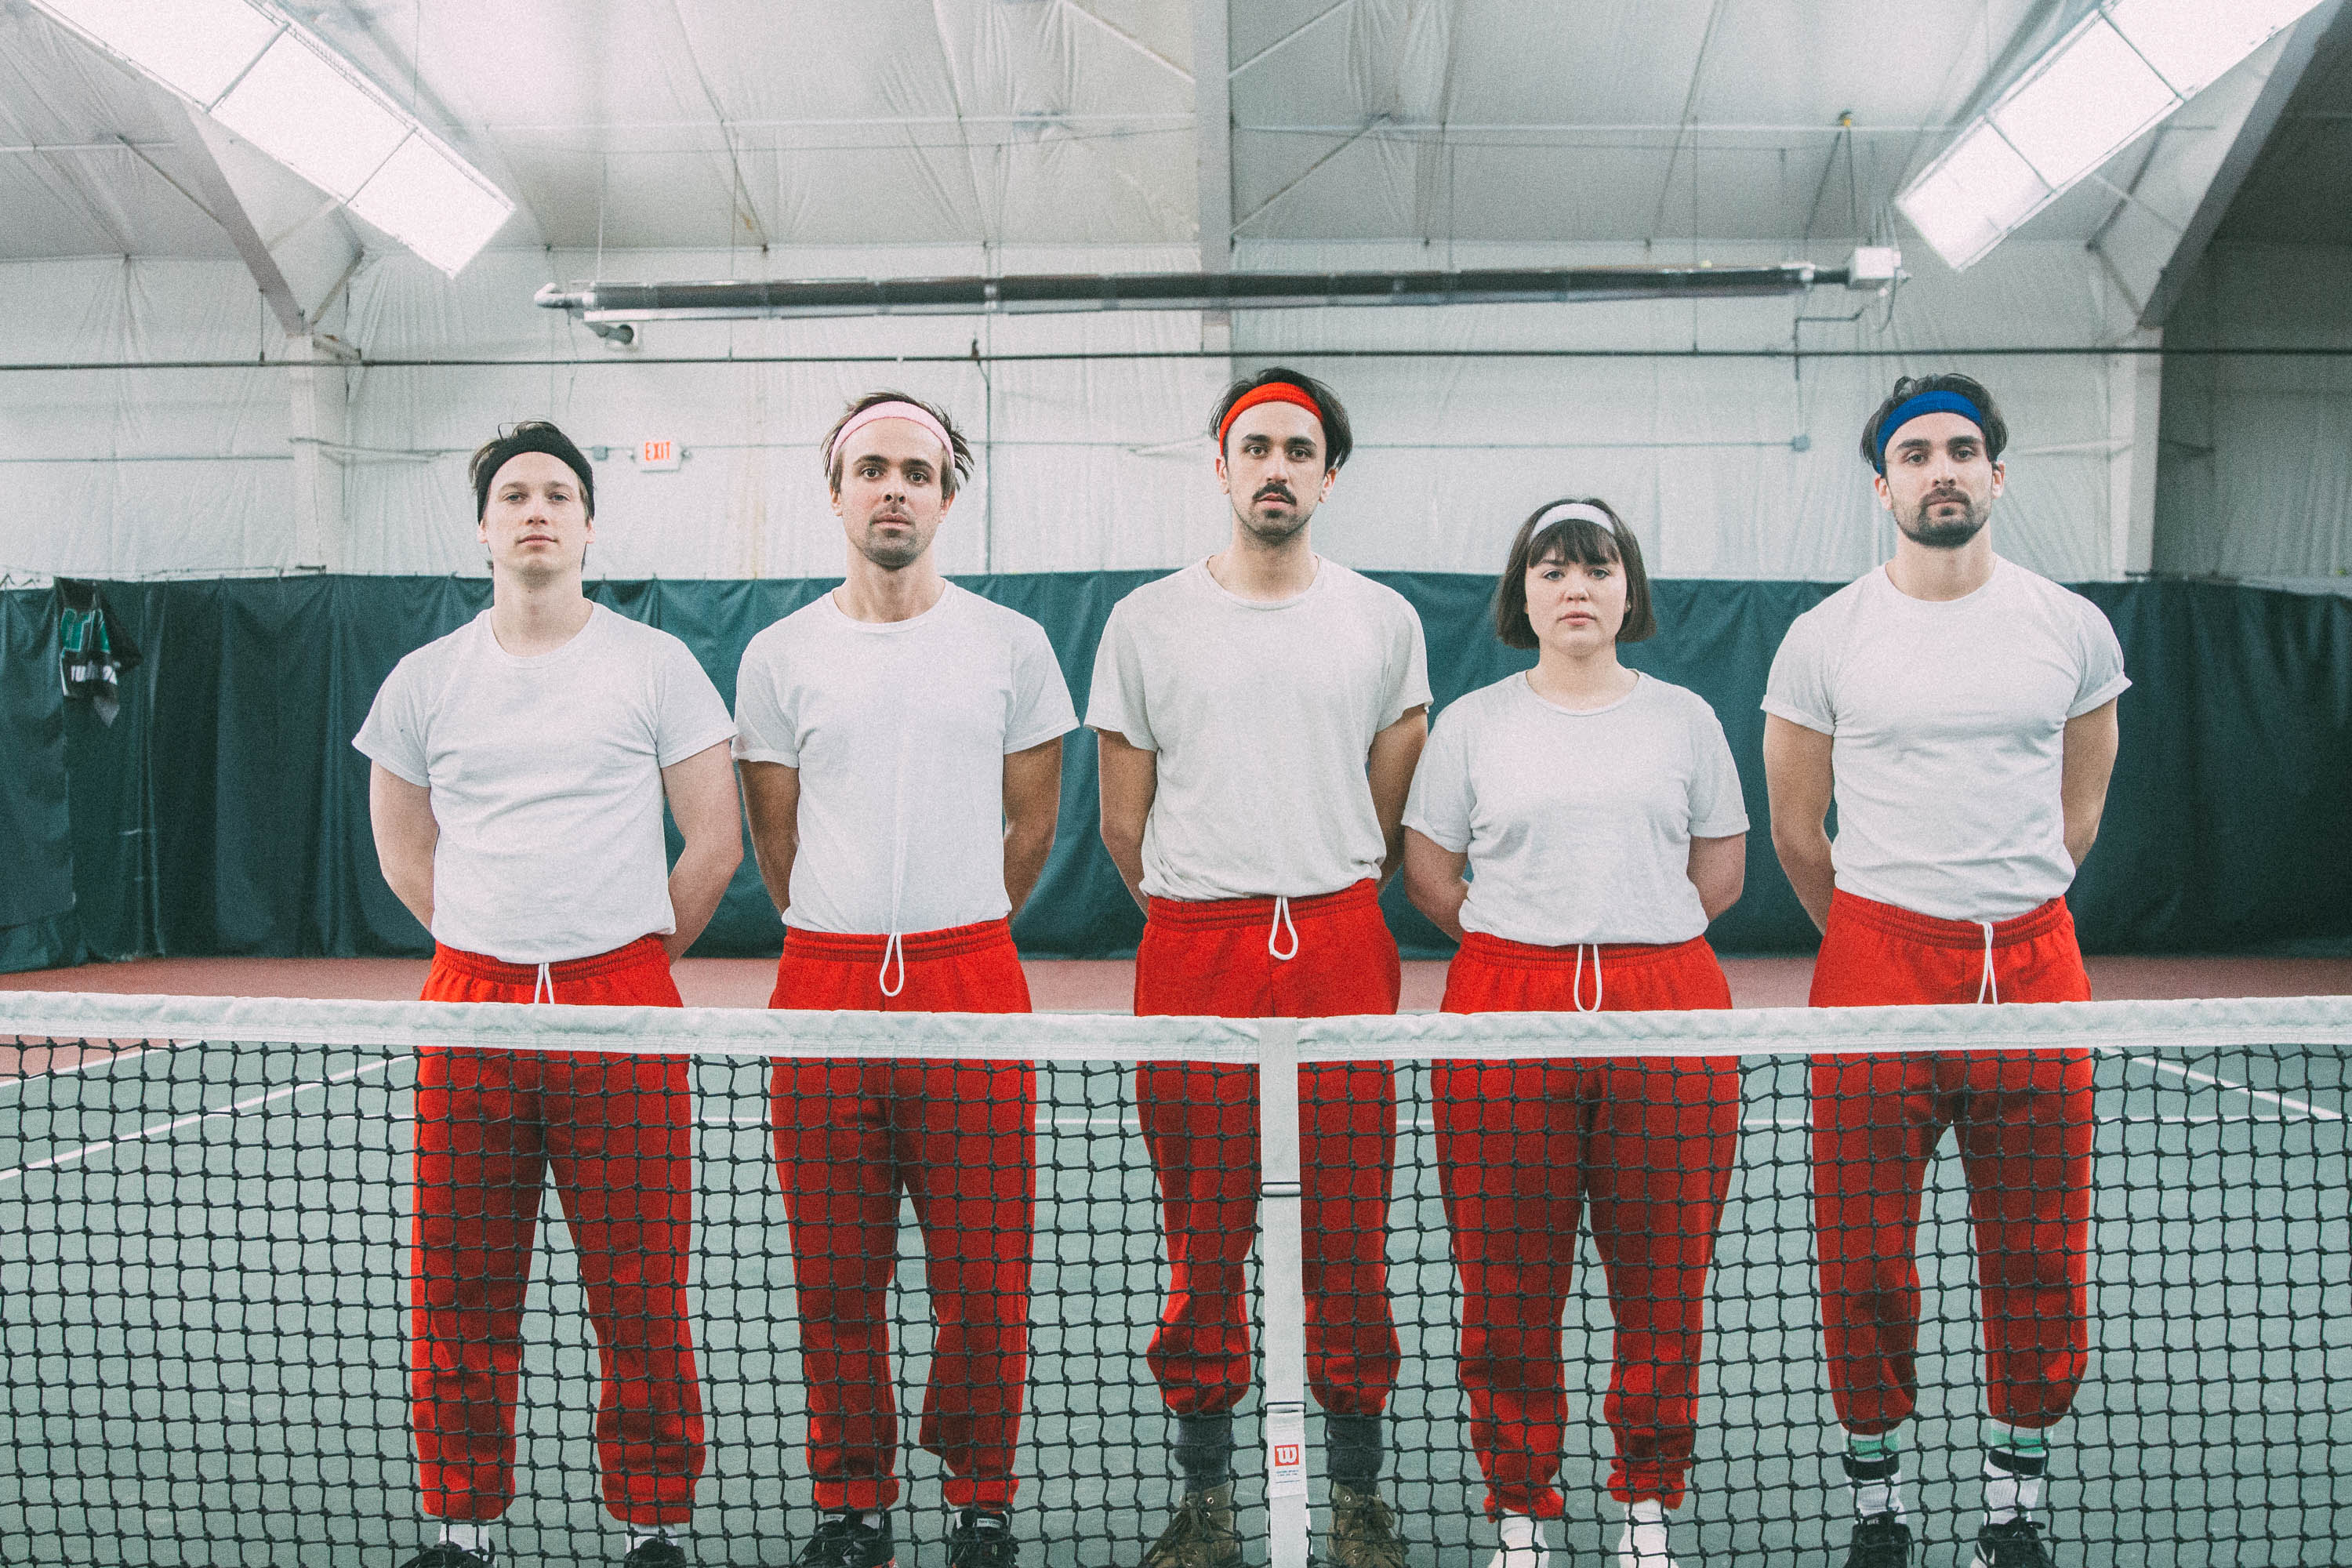 The members of Fever Dolls wear matching outfits — white shirts and red pants — on a tennis court.